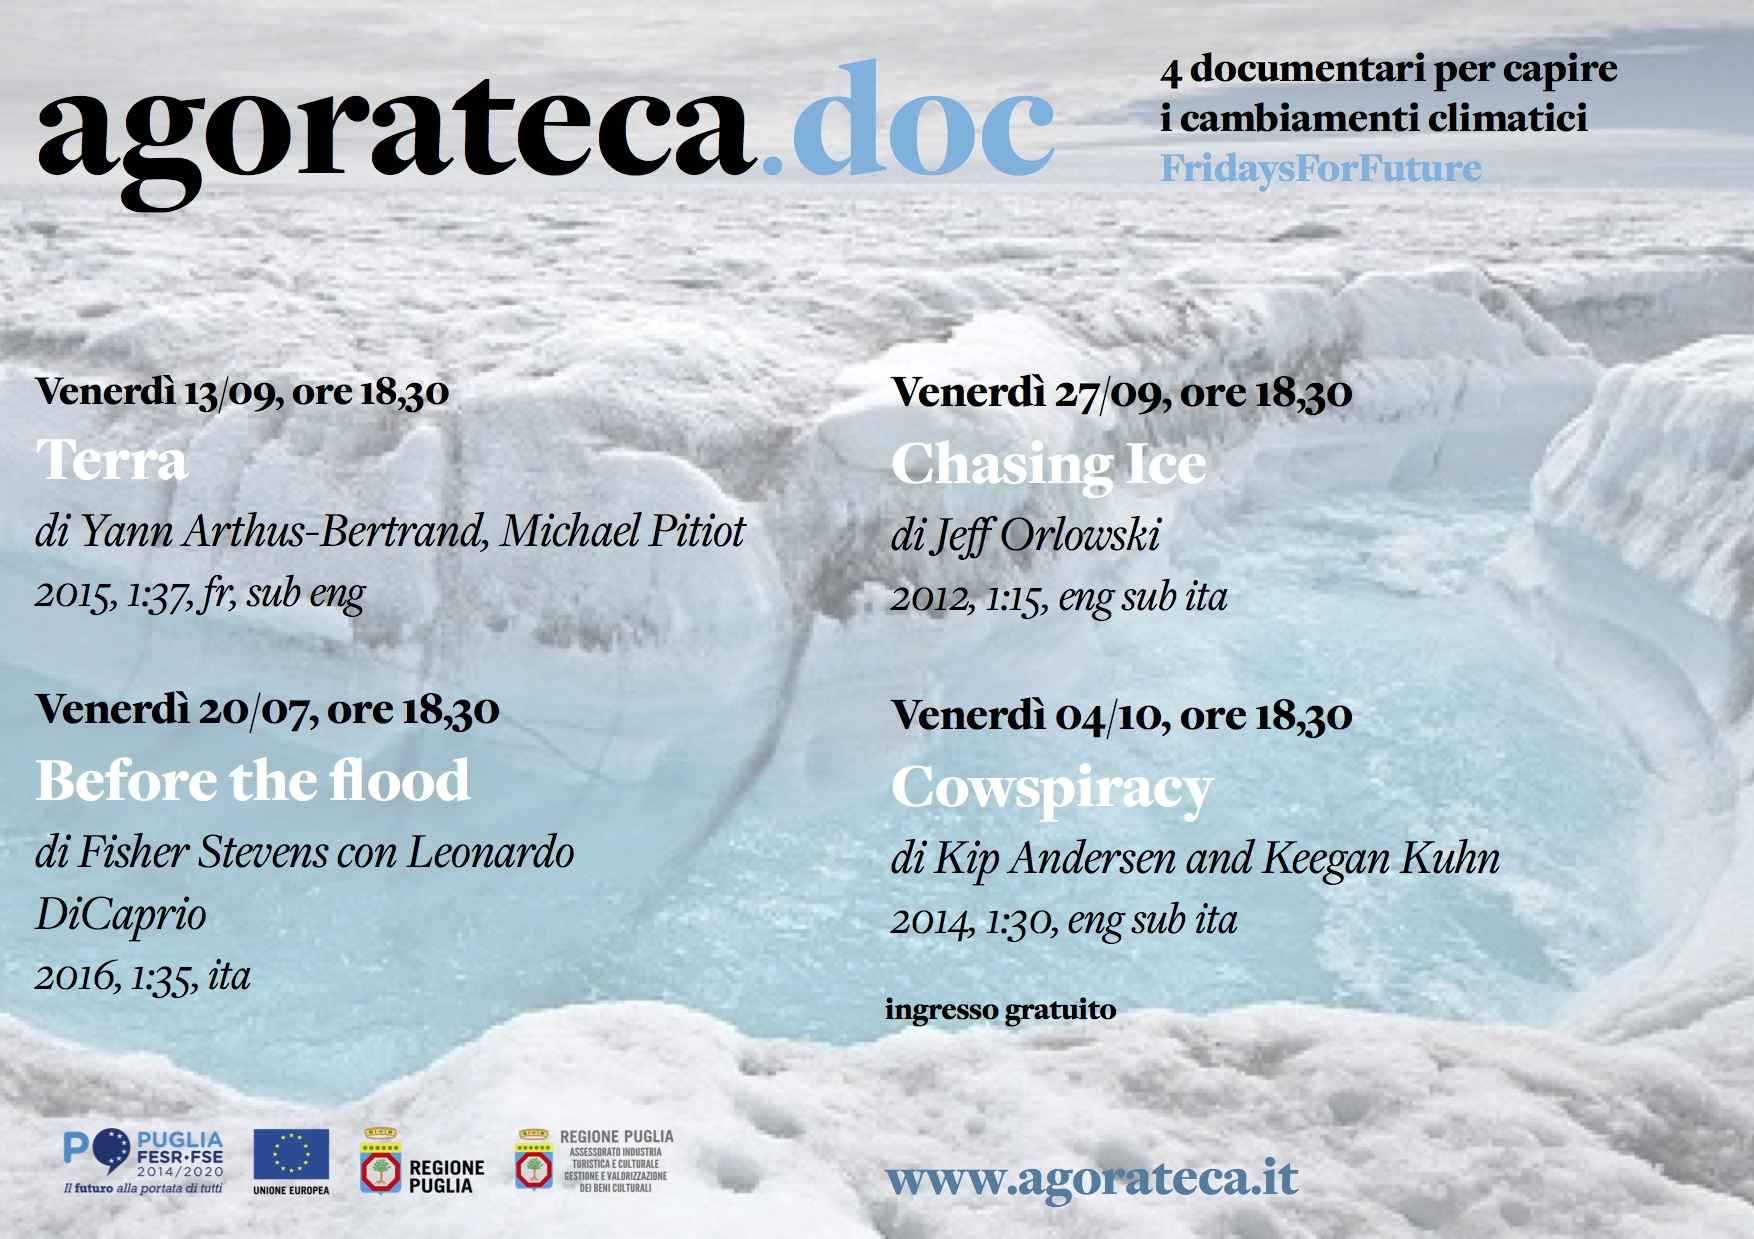 agorateca.doc